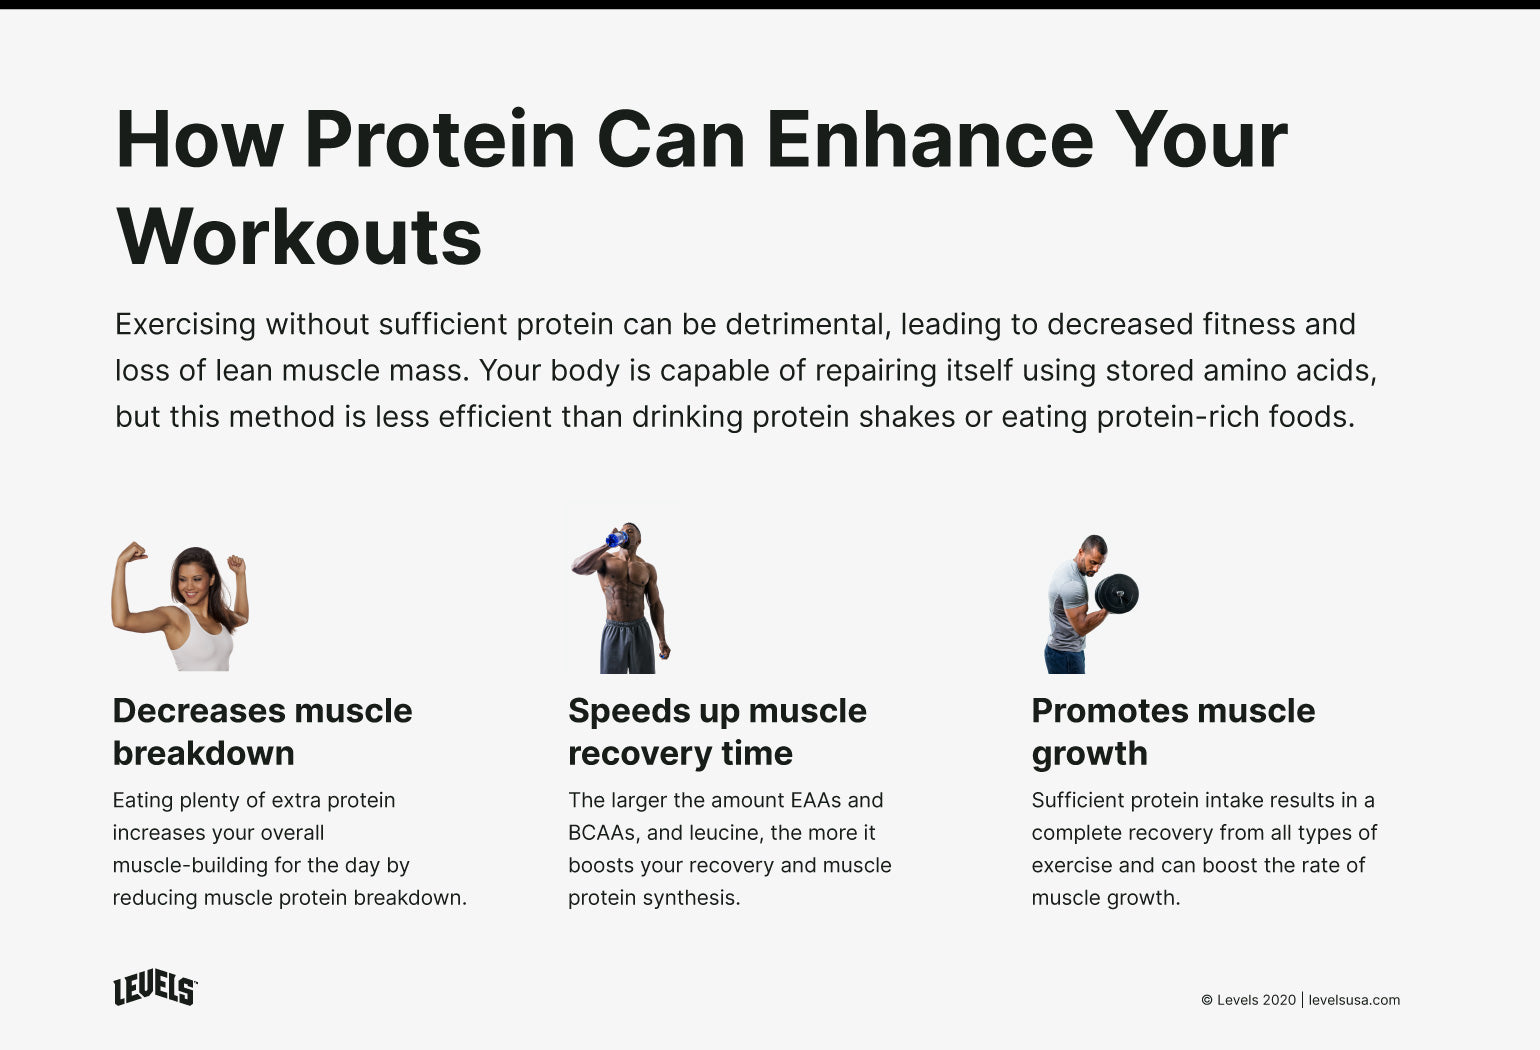 Benefits of Protein For Workouts - Infographic